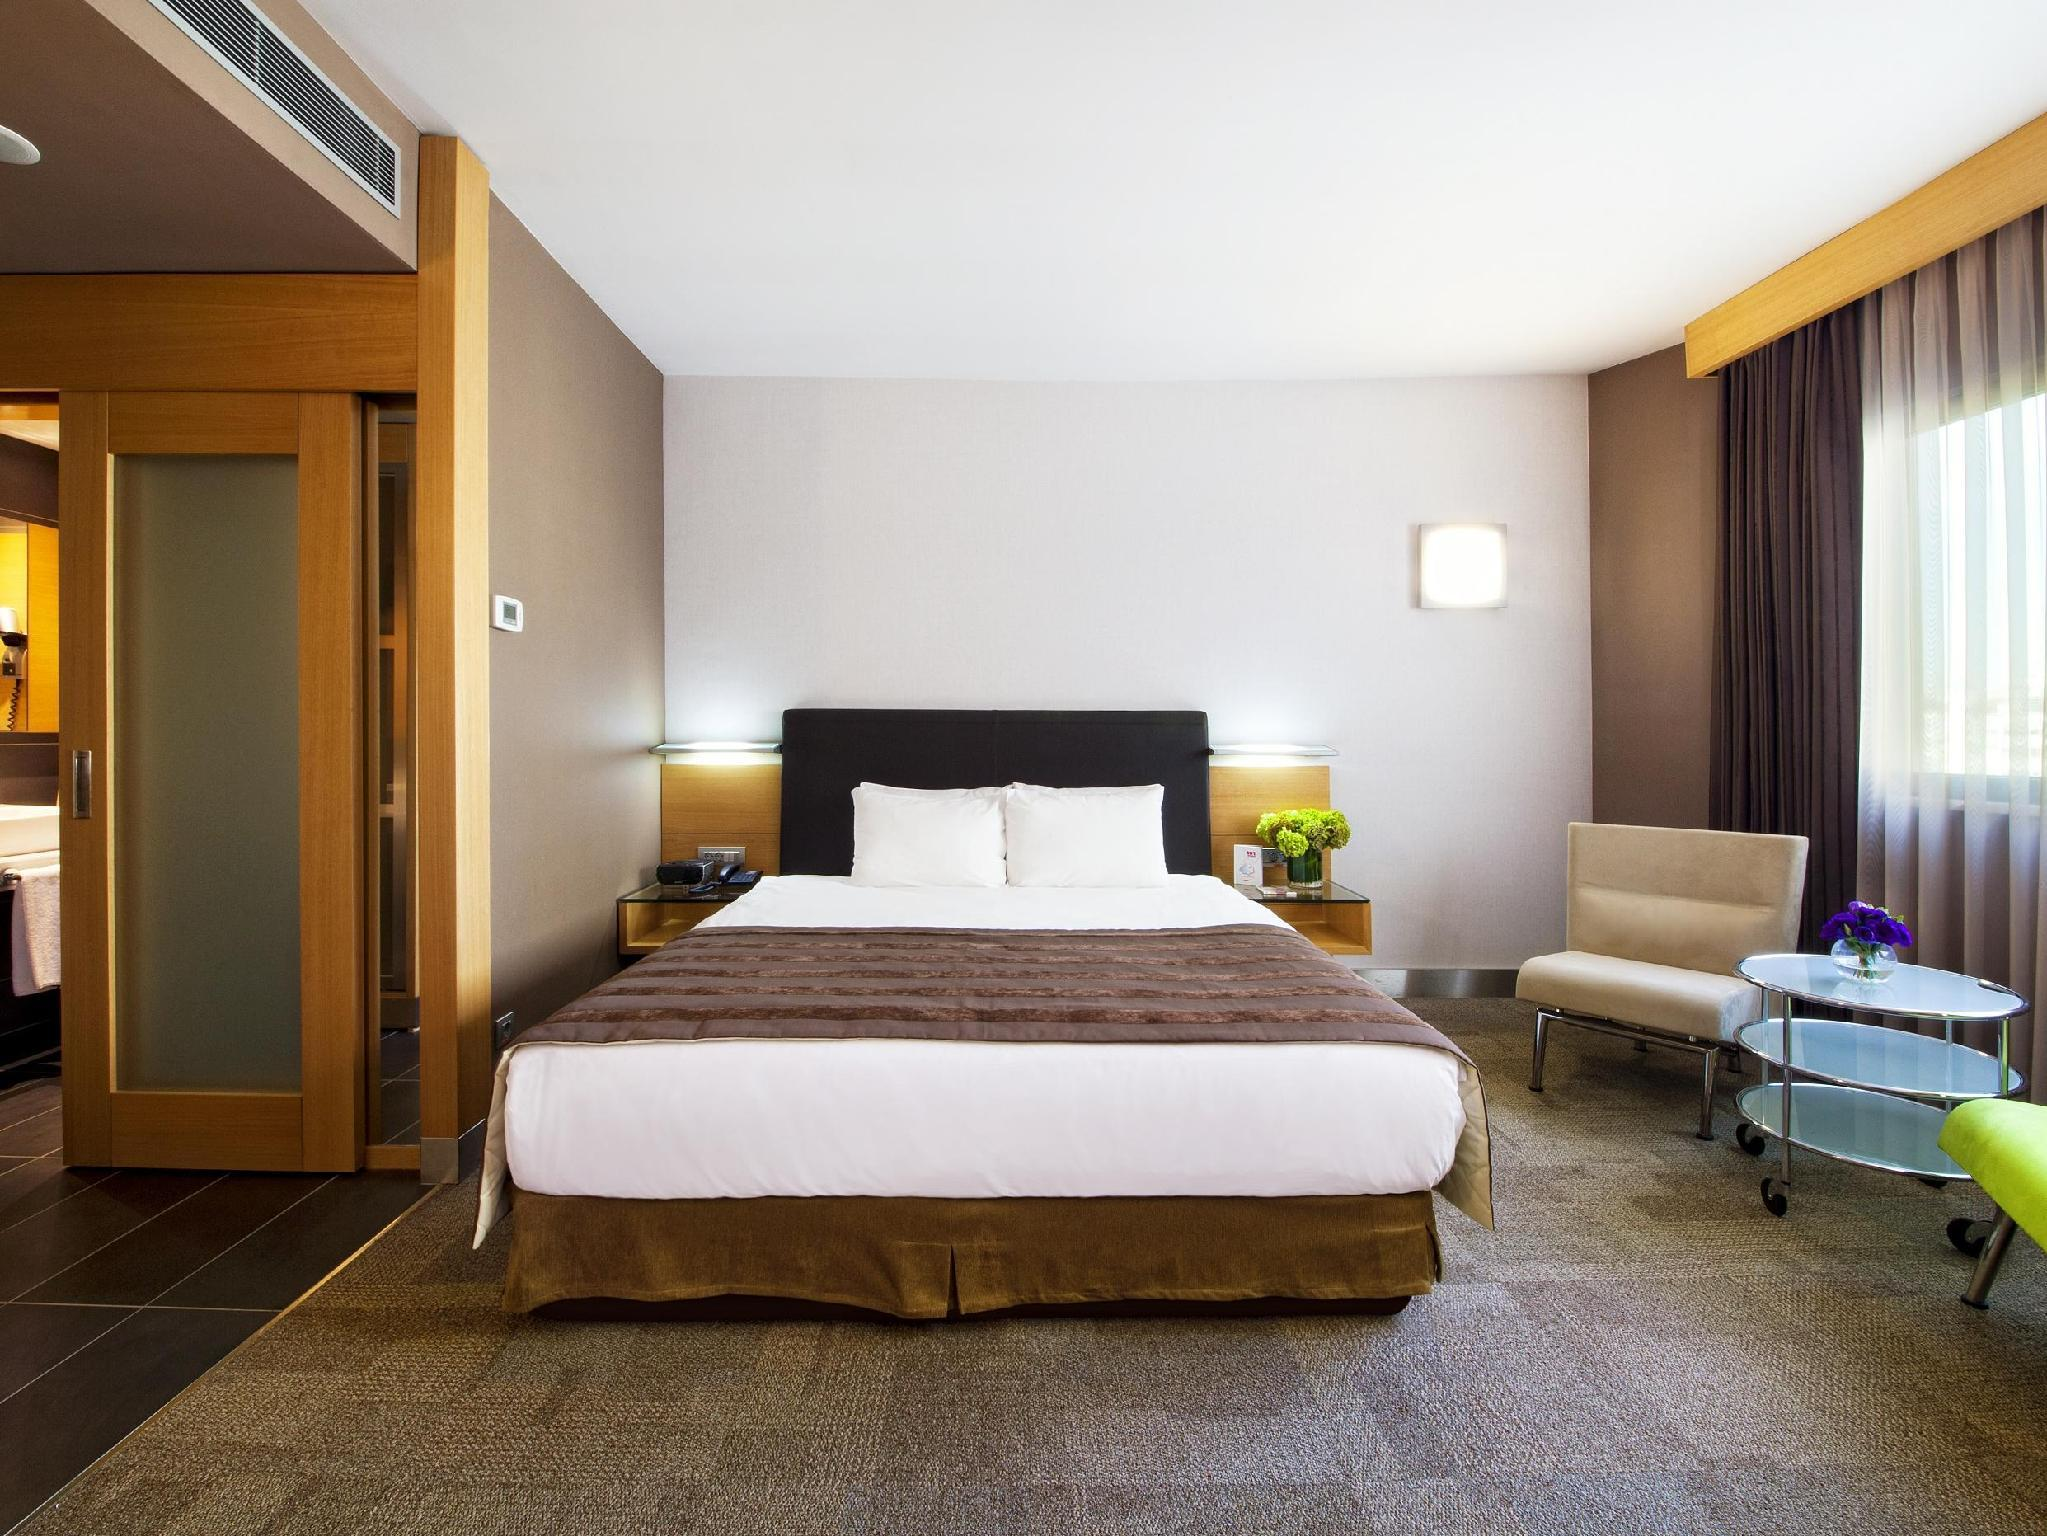 Best price on point hotel taksim in istanbul reviews for Taksim premium hotel